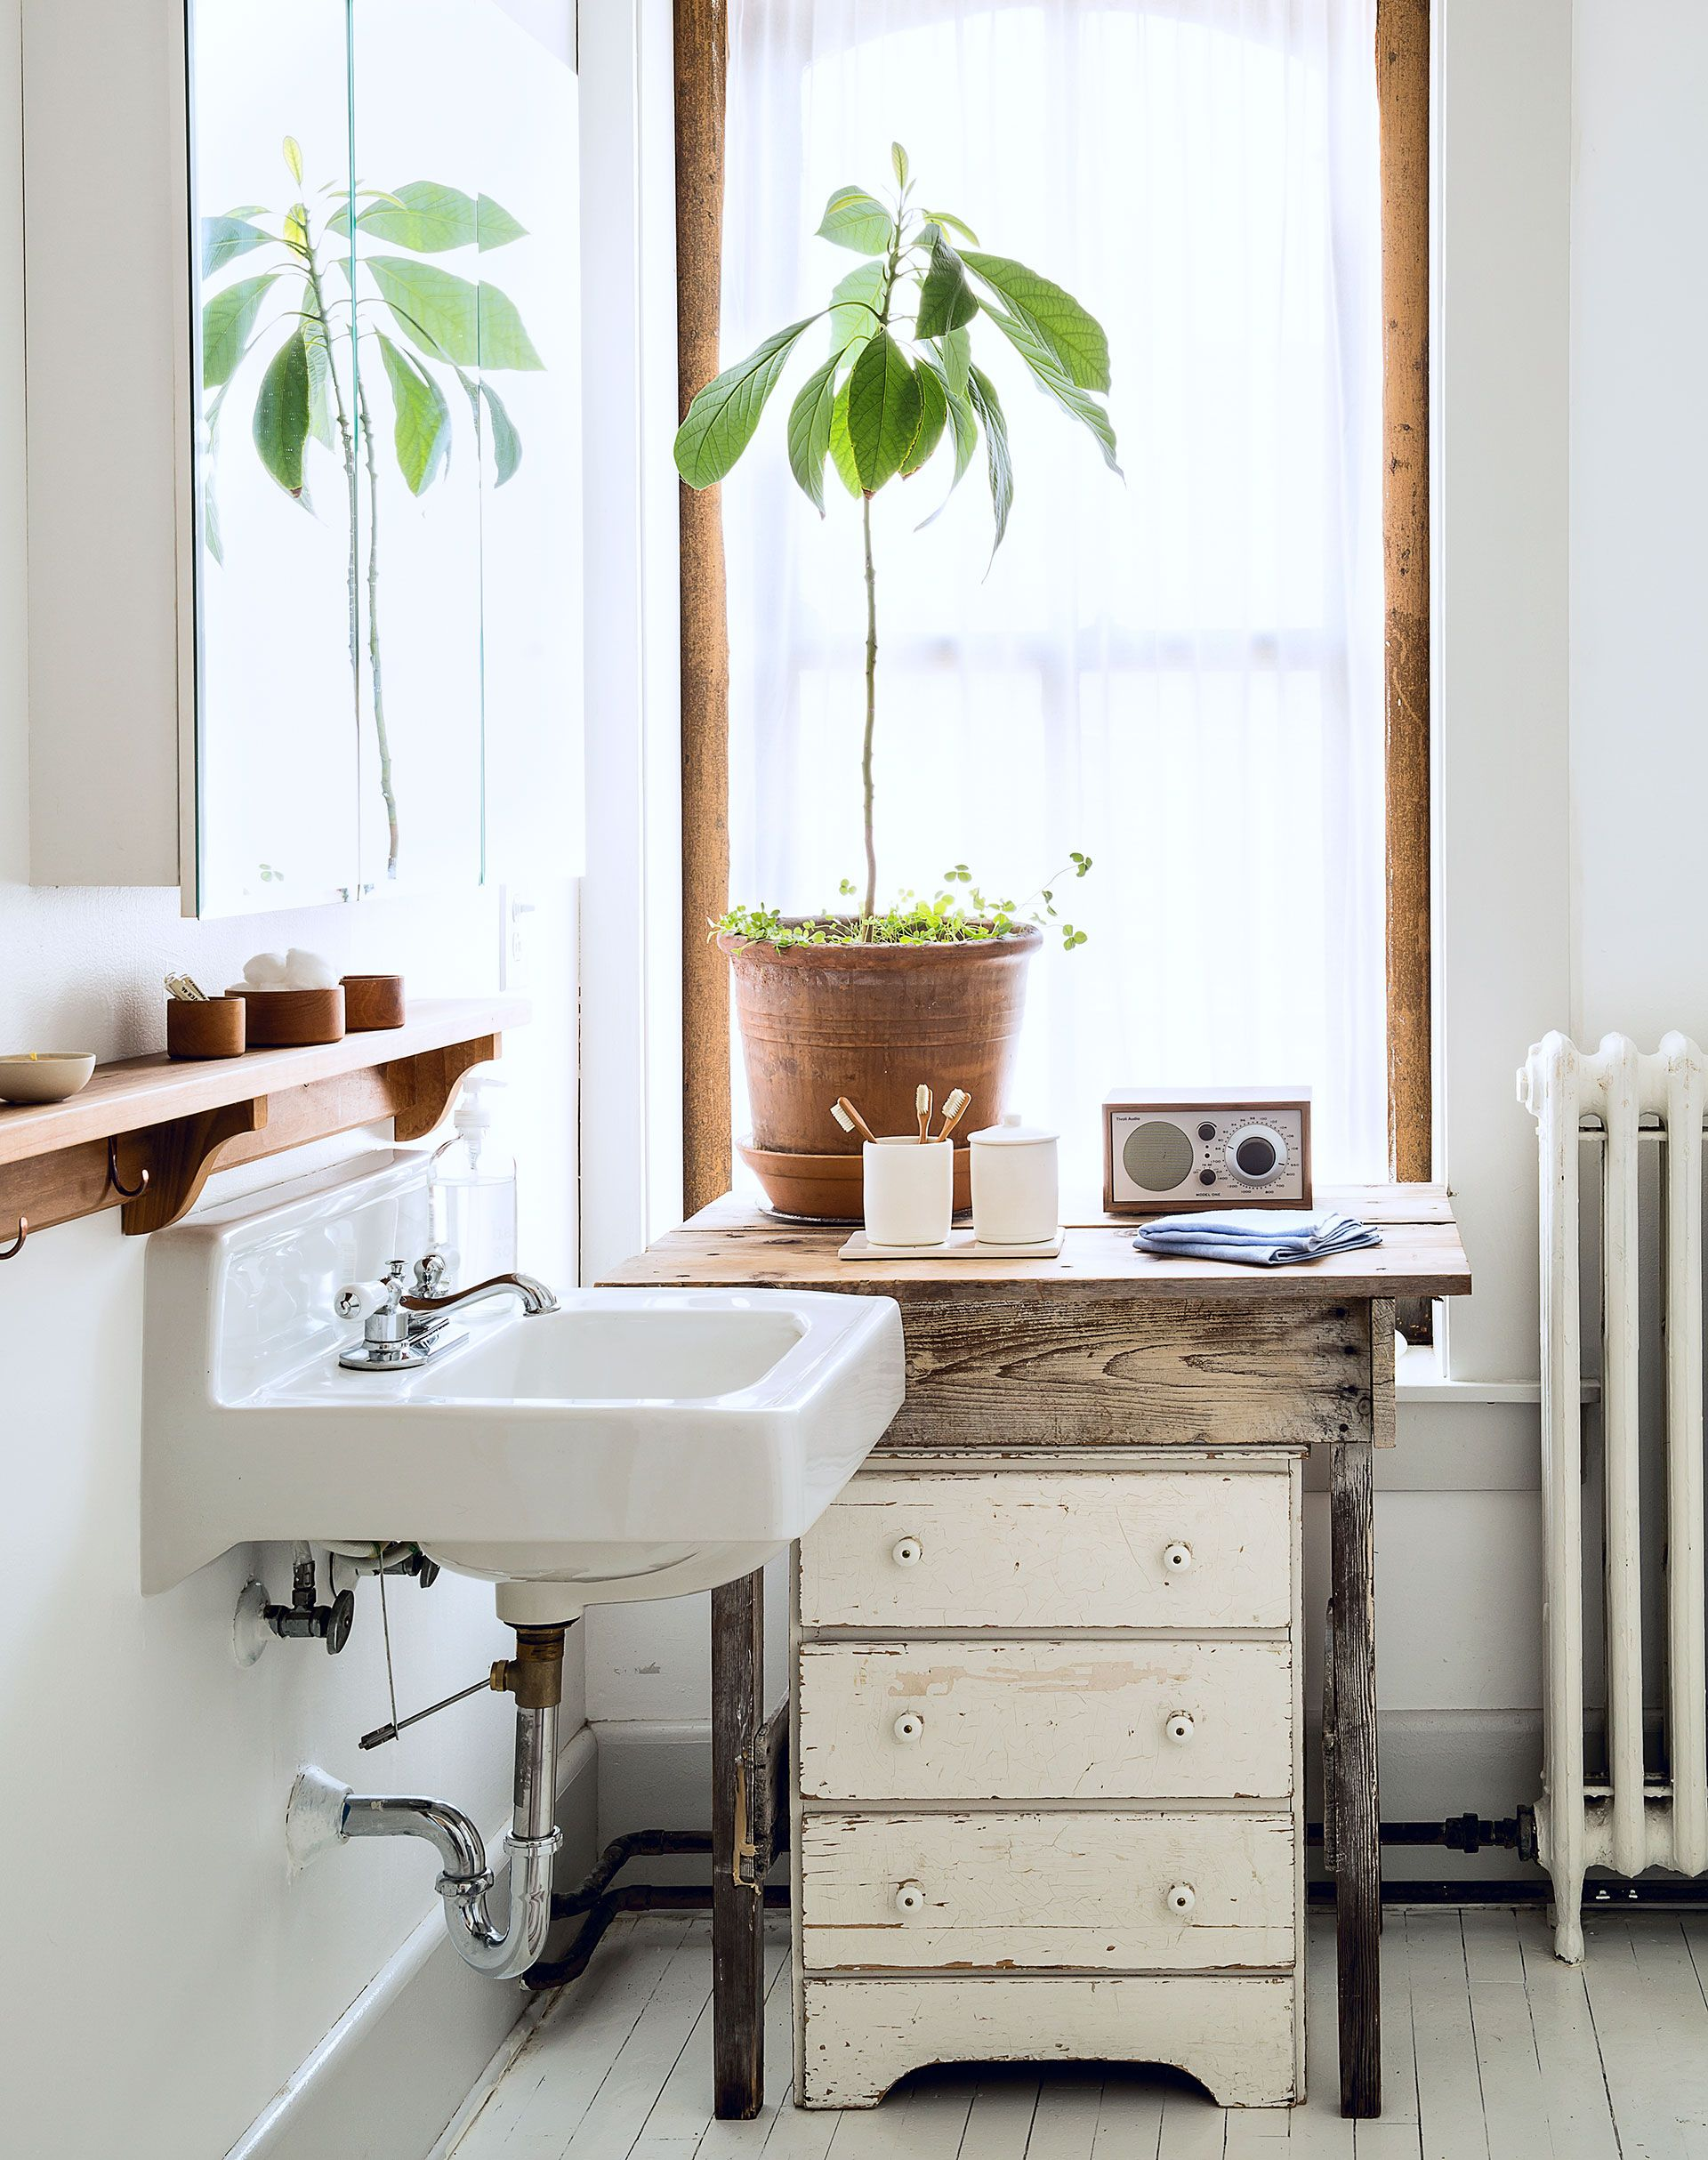 90 Inspiring Bathroom Decorating Ideas | Small storage, Vintage ...